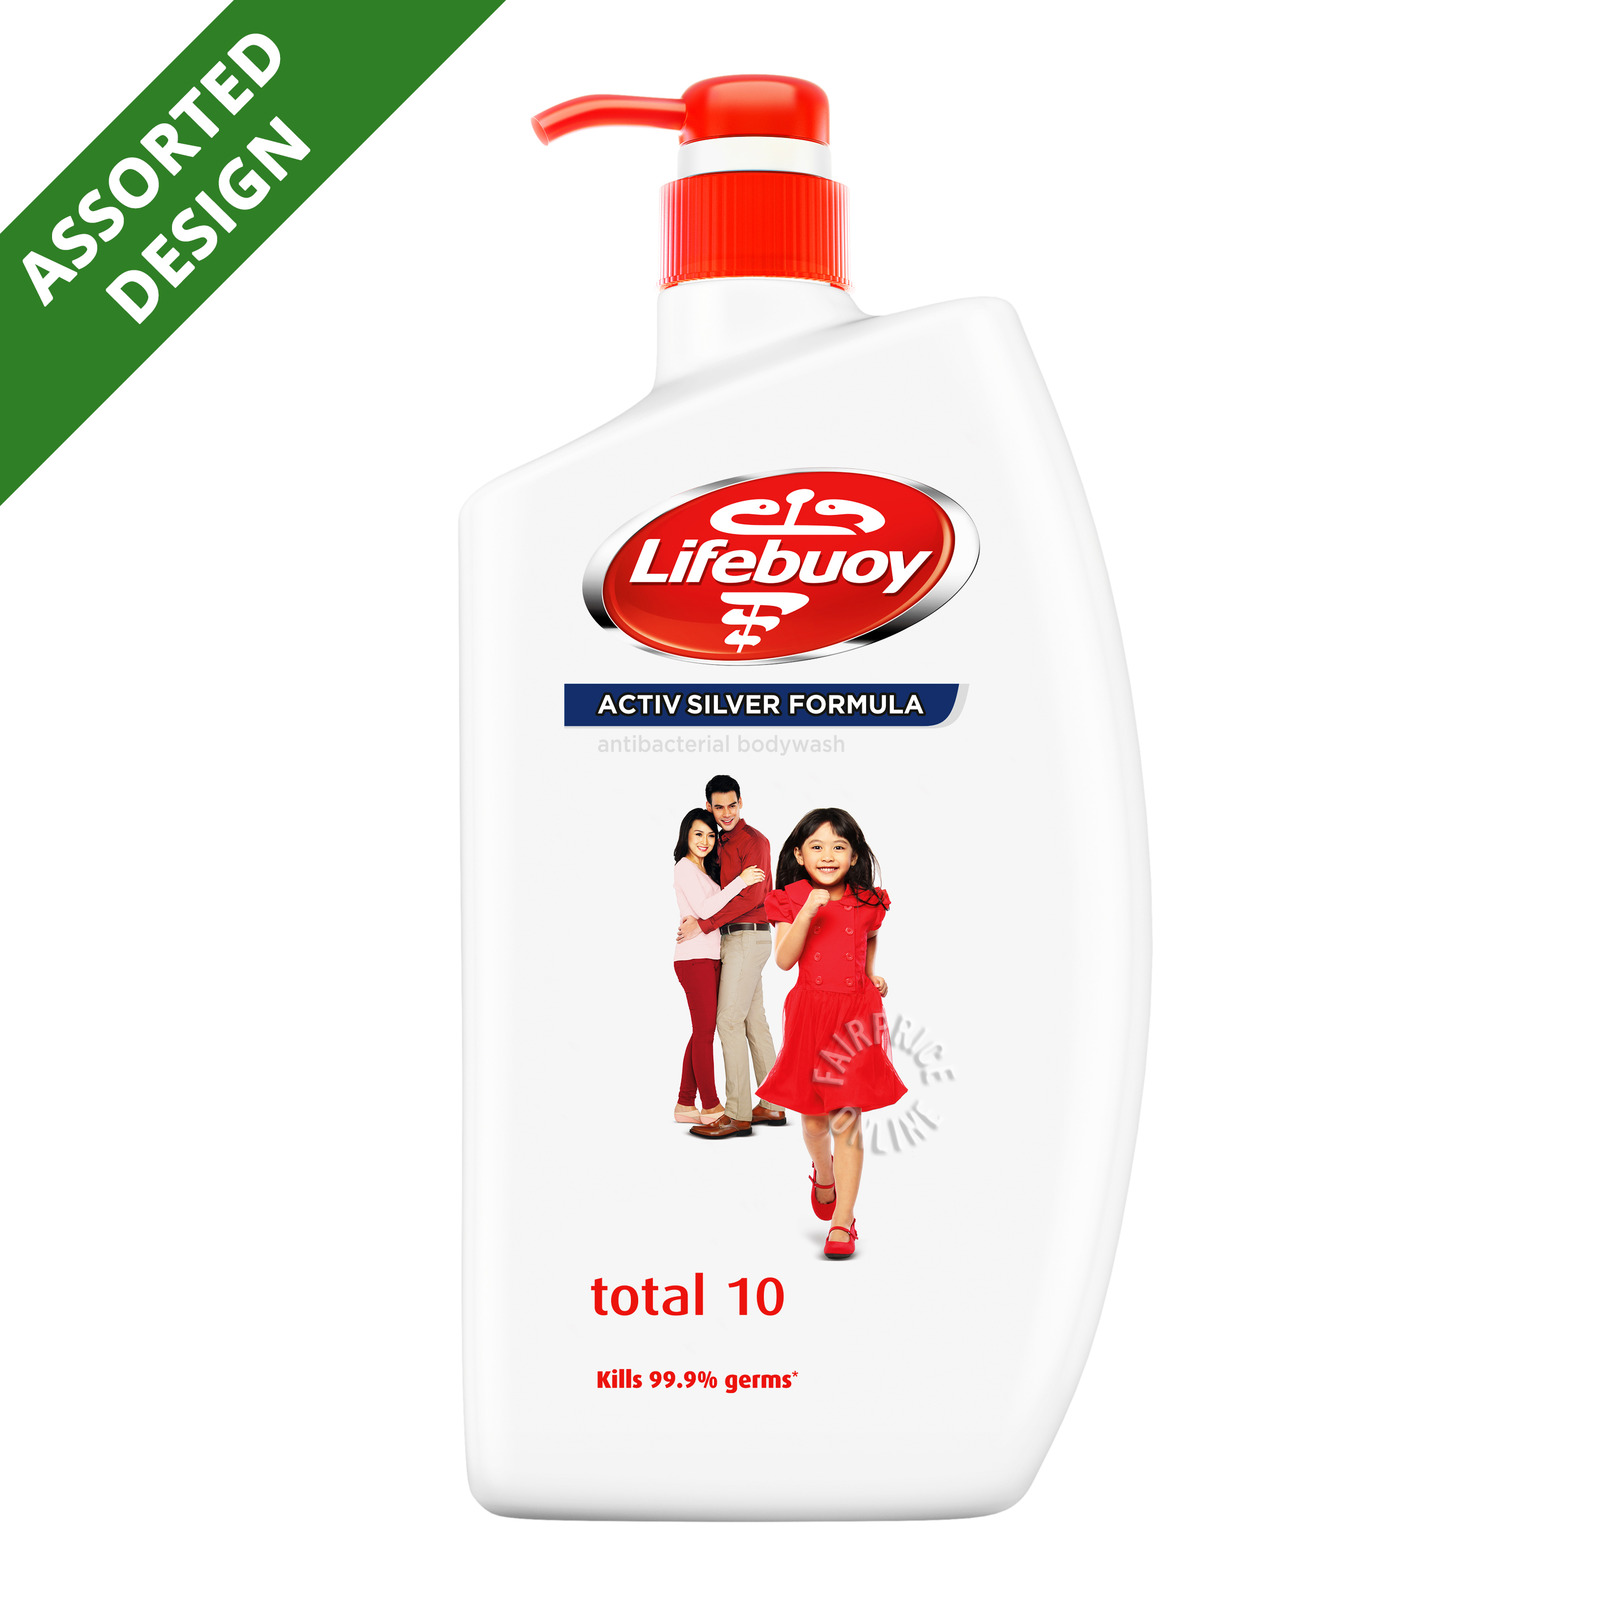 Lifebuoy Antibacterial Body Wash Total 10, 1L